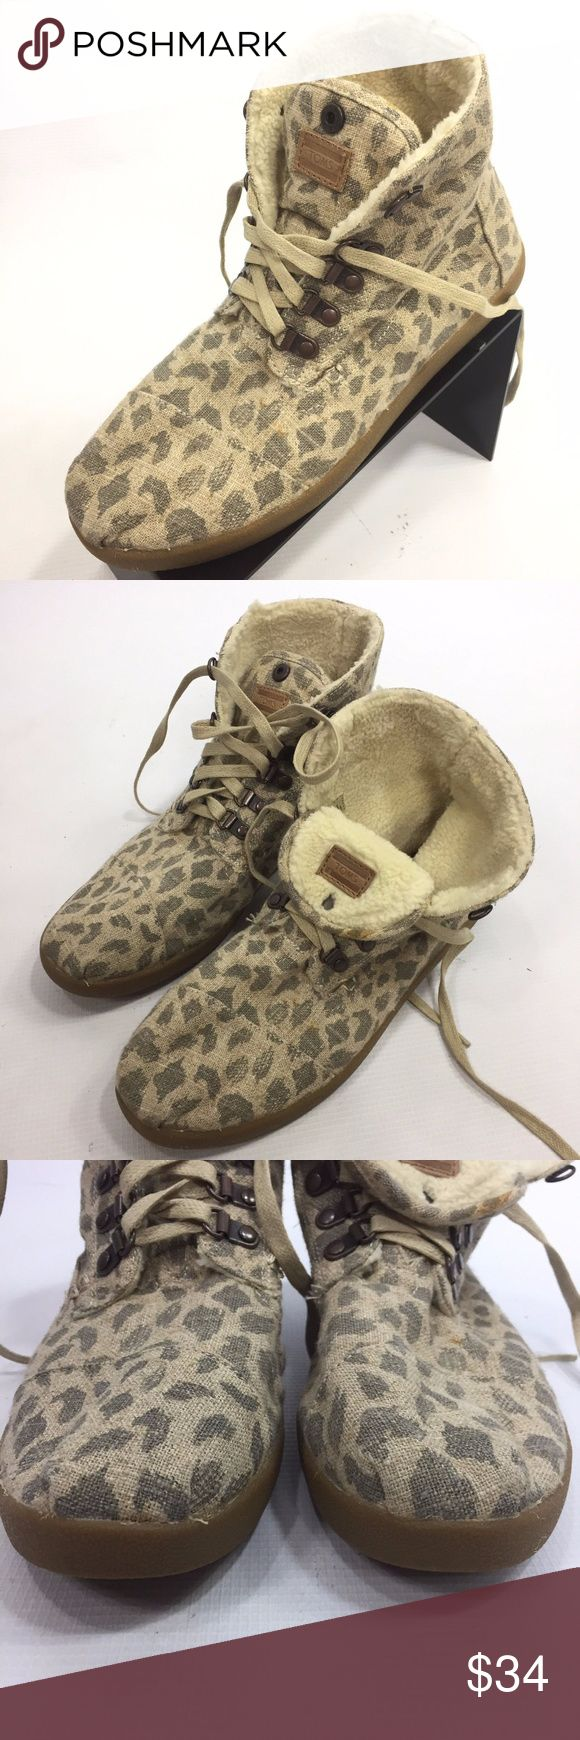 Toms Botas Leopard Burlap Hemp 10 High Tops Toms Women's Botas Leopard Burlap Hemp 10 Snap Tongue High Tops  Some marks; See photos for details Toms Shoes Ankle Boots & Booties